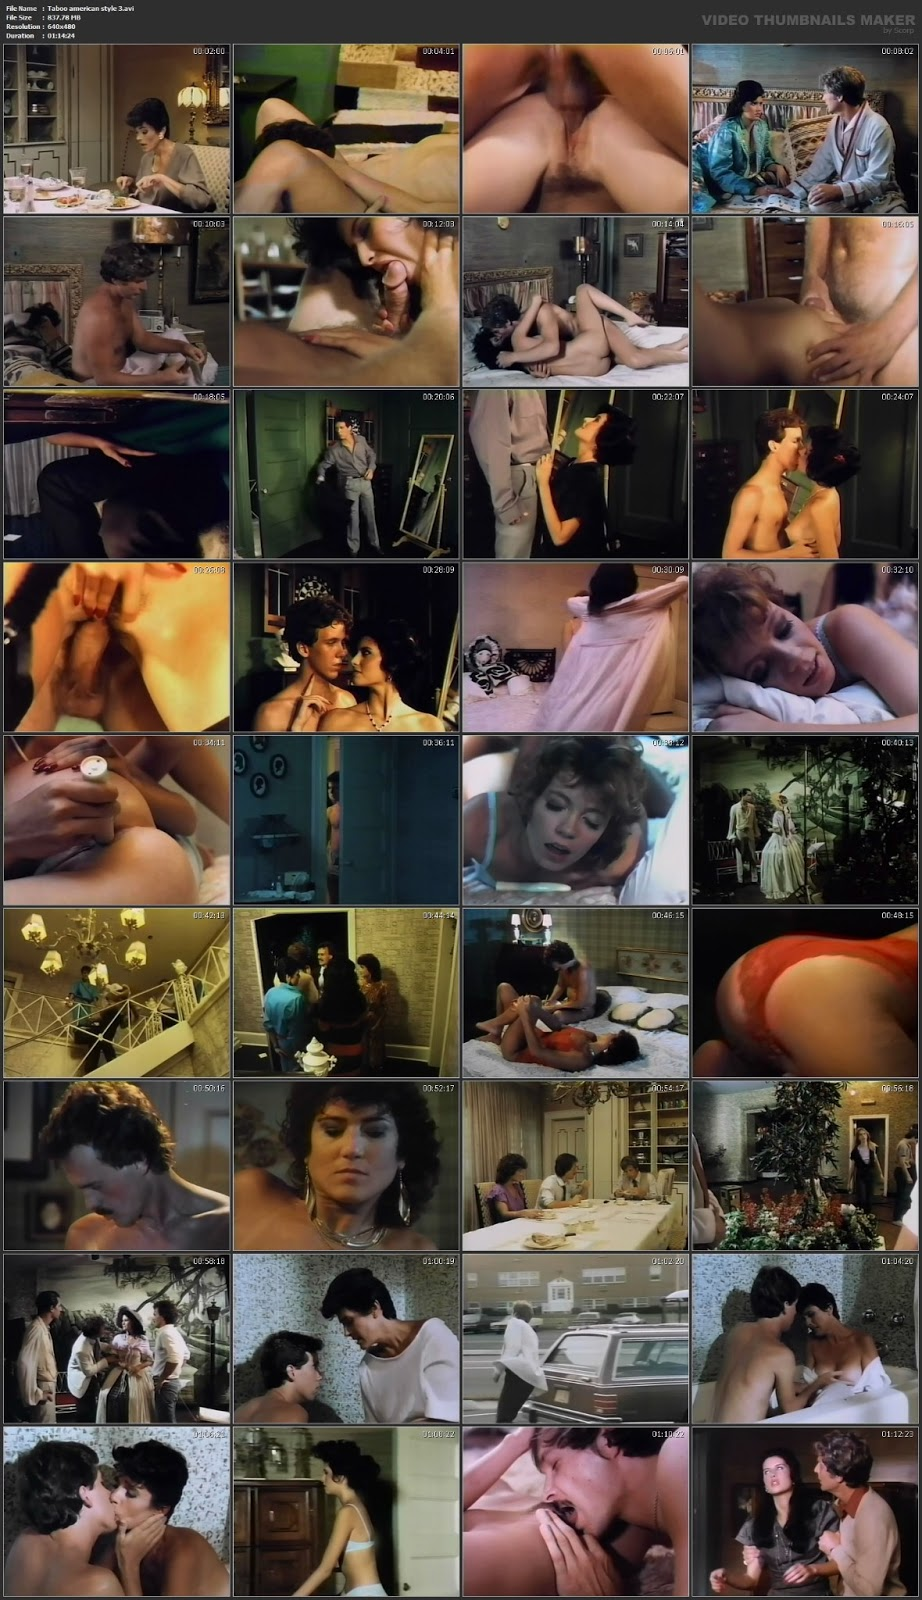 Kay parker 1984 retro gold - 1 part 5